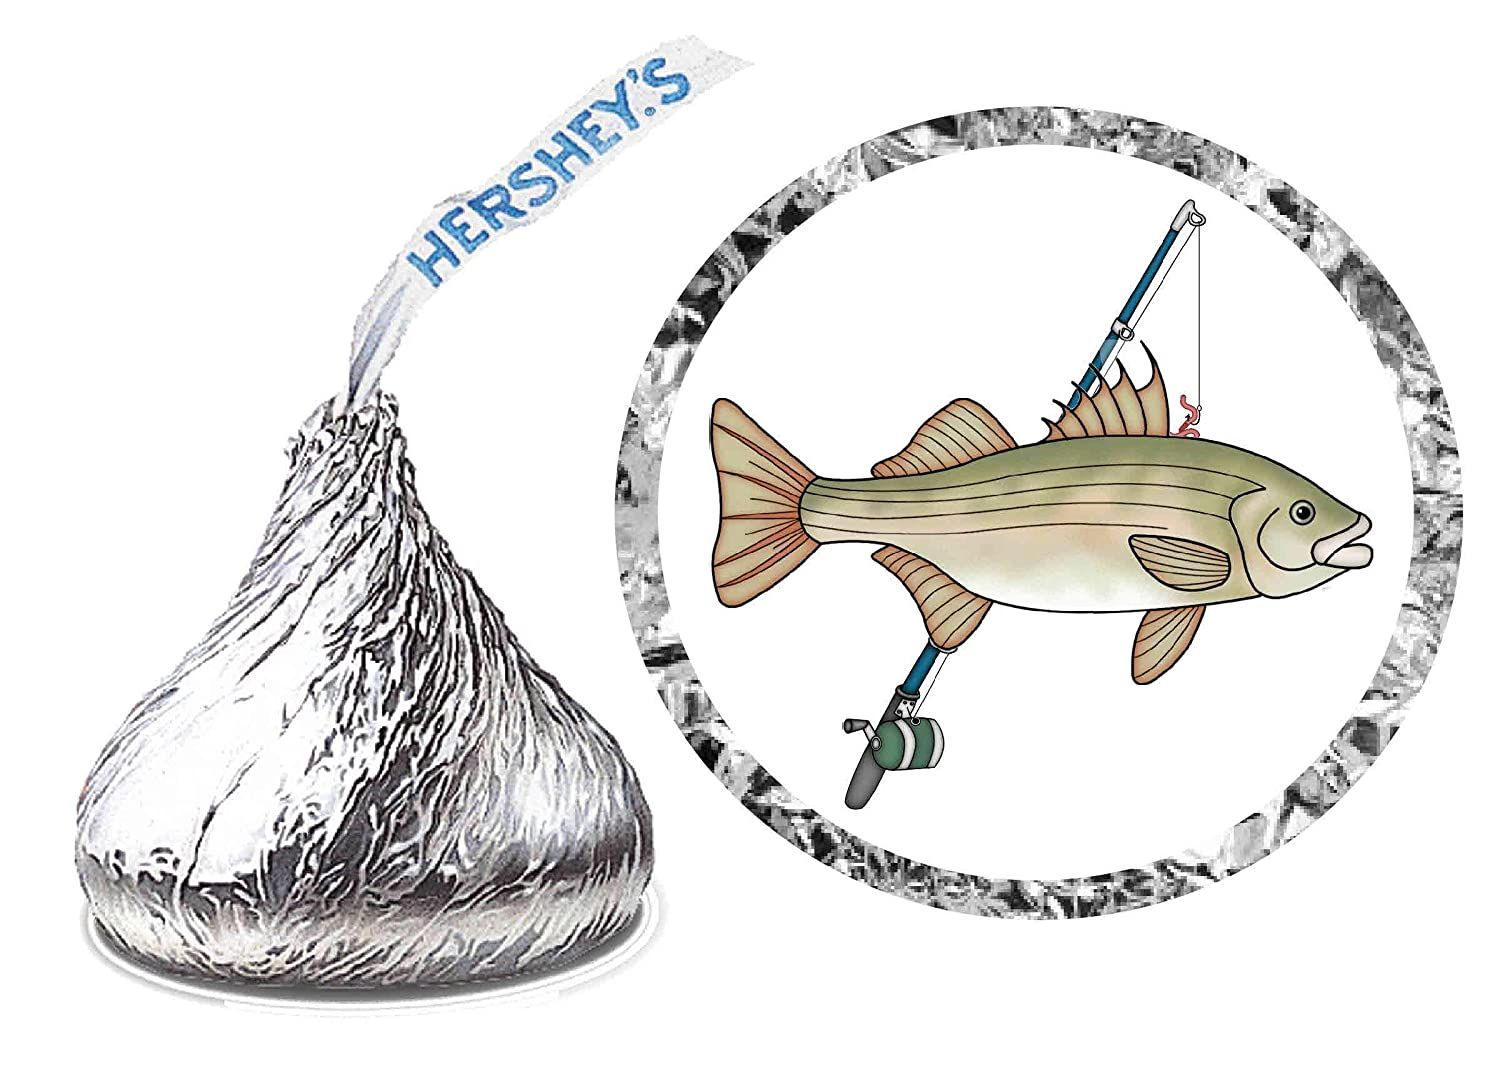 216 FISHING BIRTHDAY Max 67% OFF 2021 PARTY FAVORS KISS HERSHEY LABELS KISSES